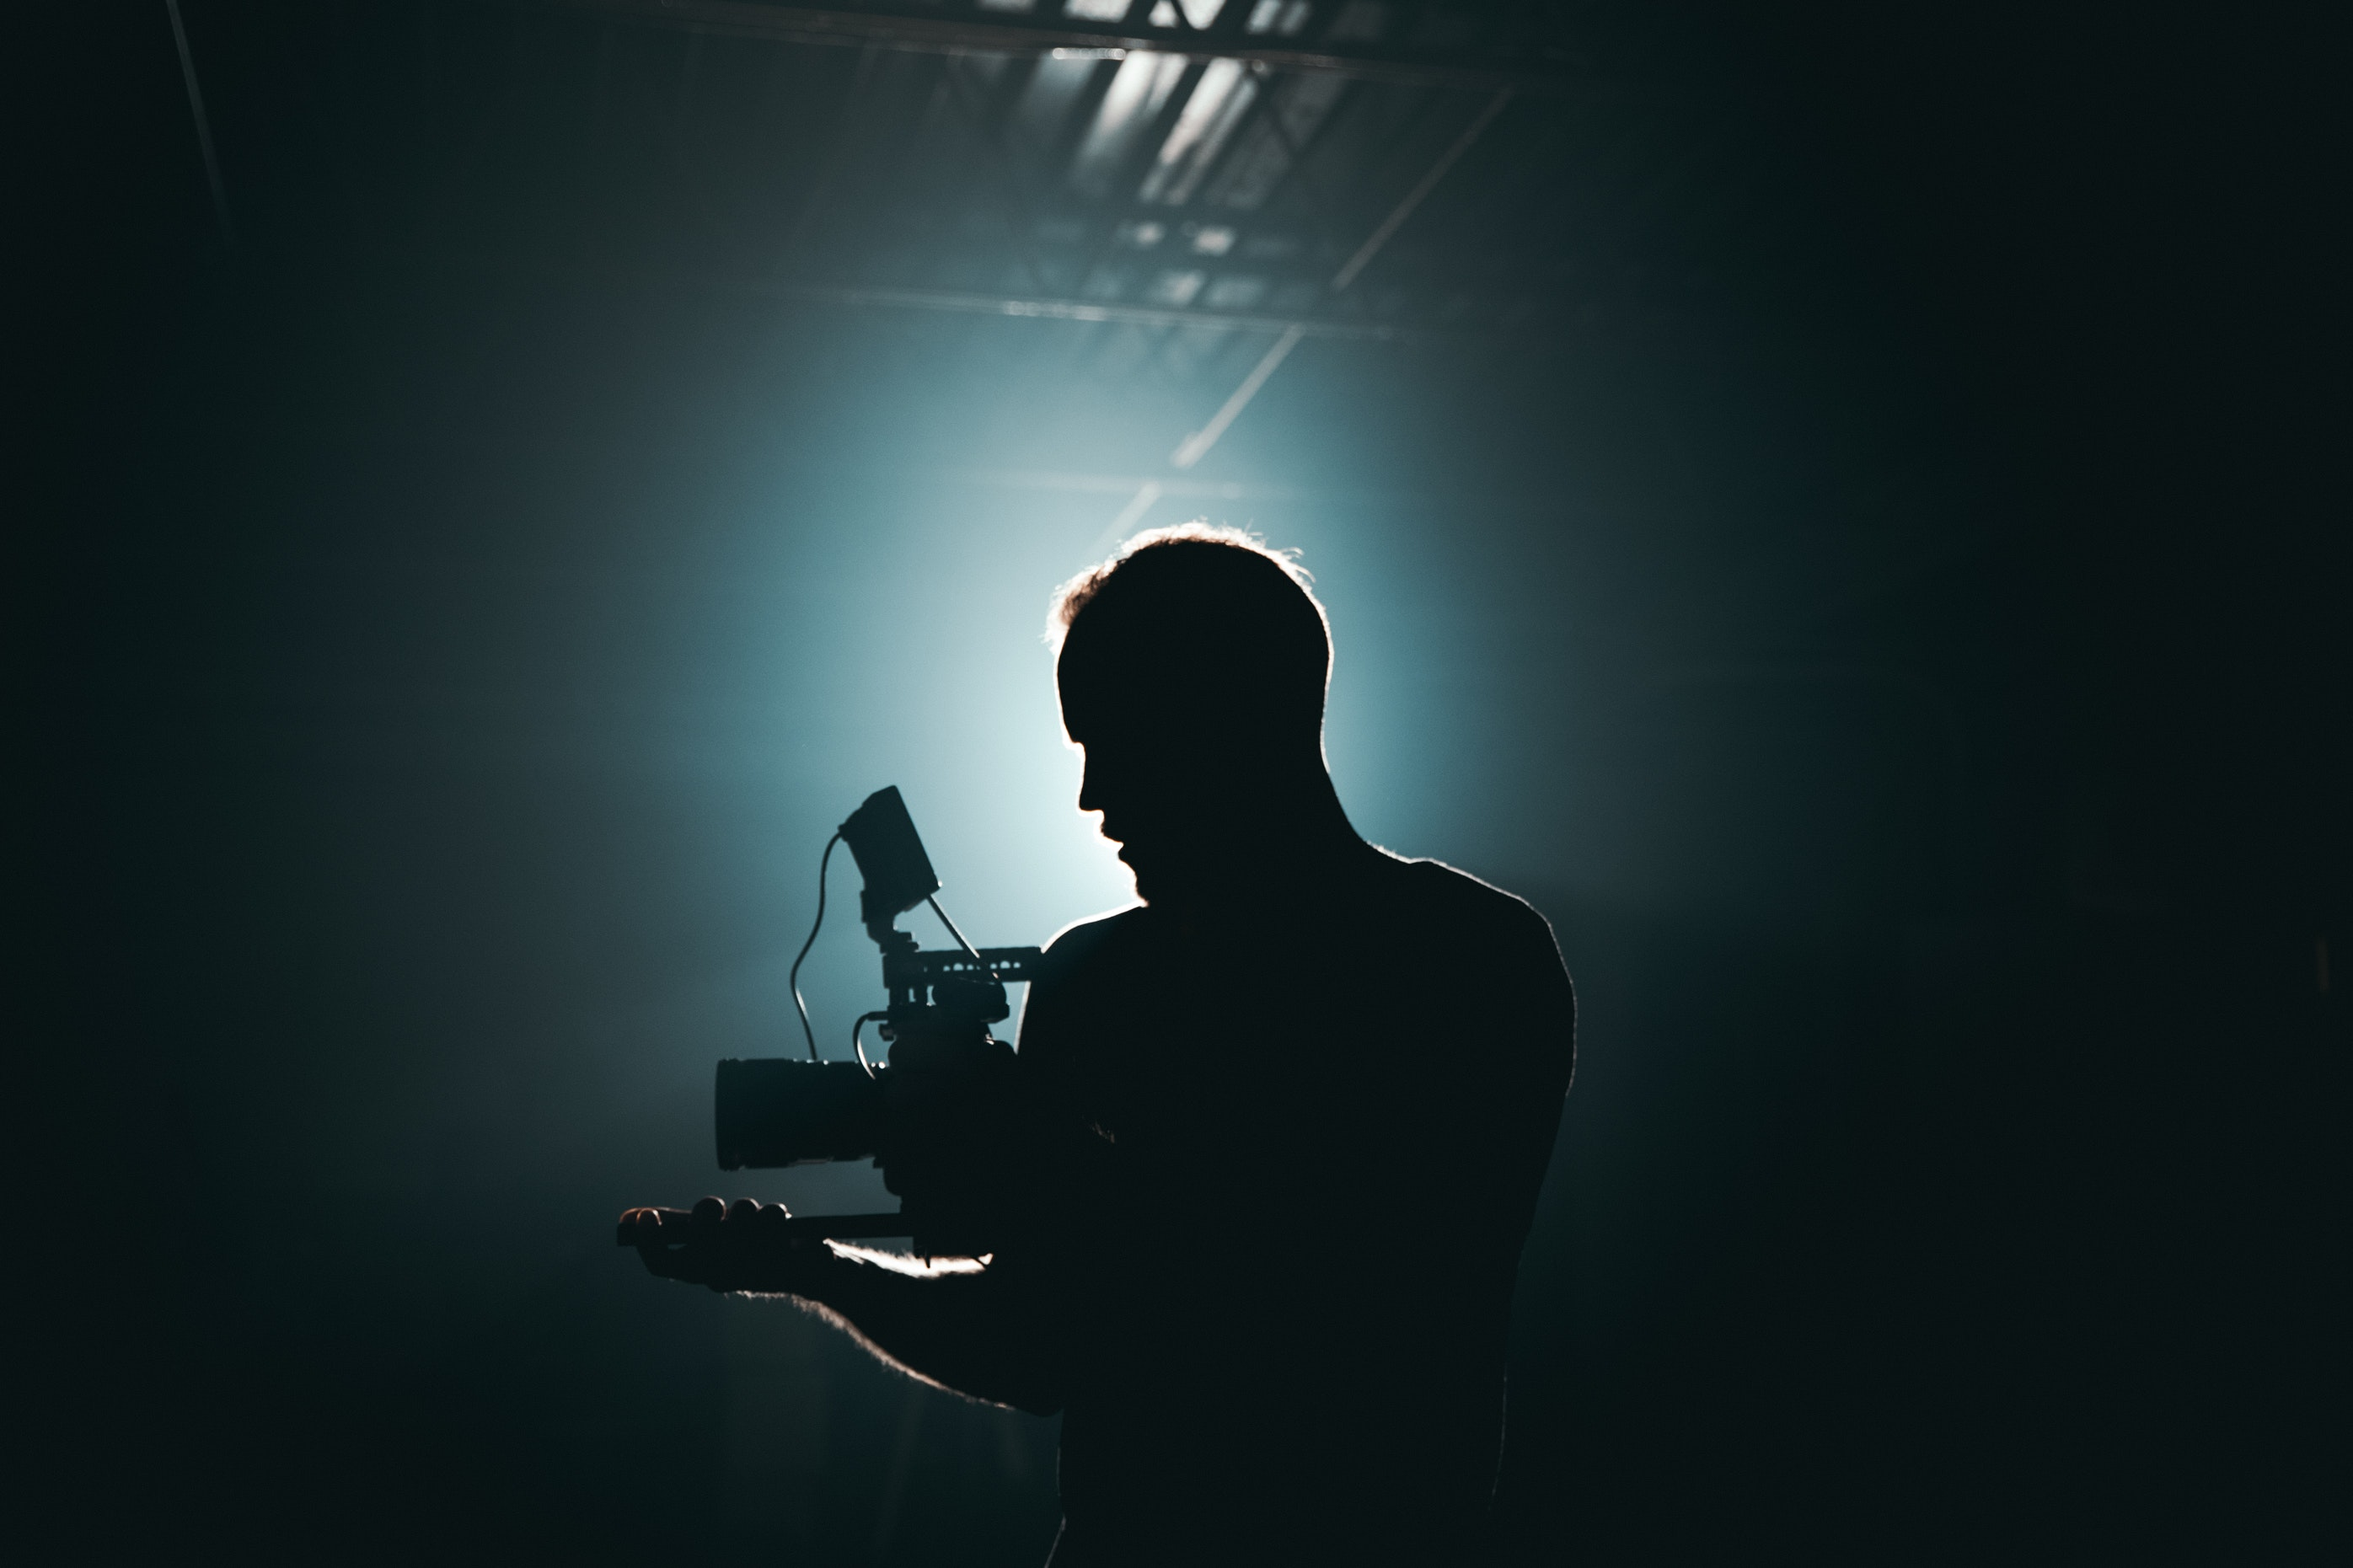 Wewa Films | Silhouette of man in dark room holding a video camera